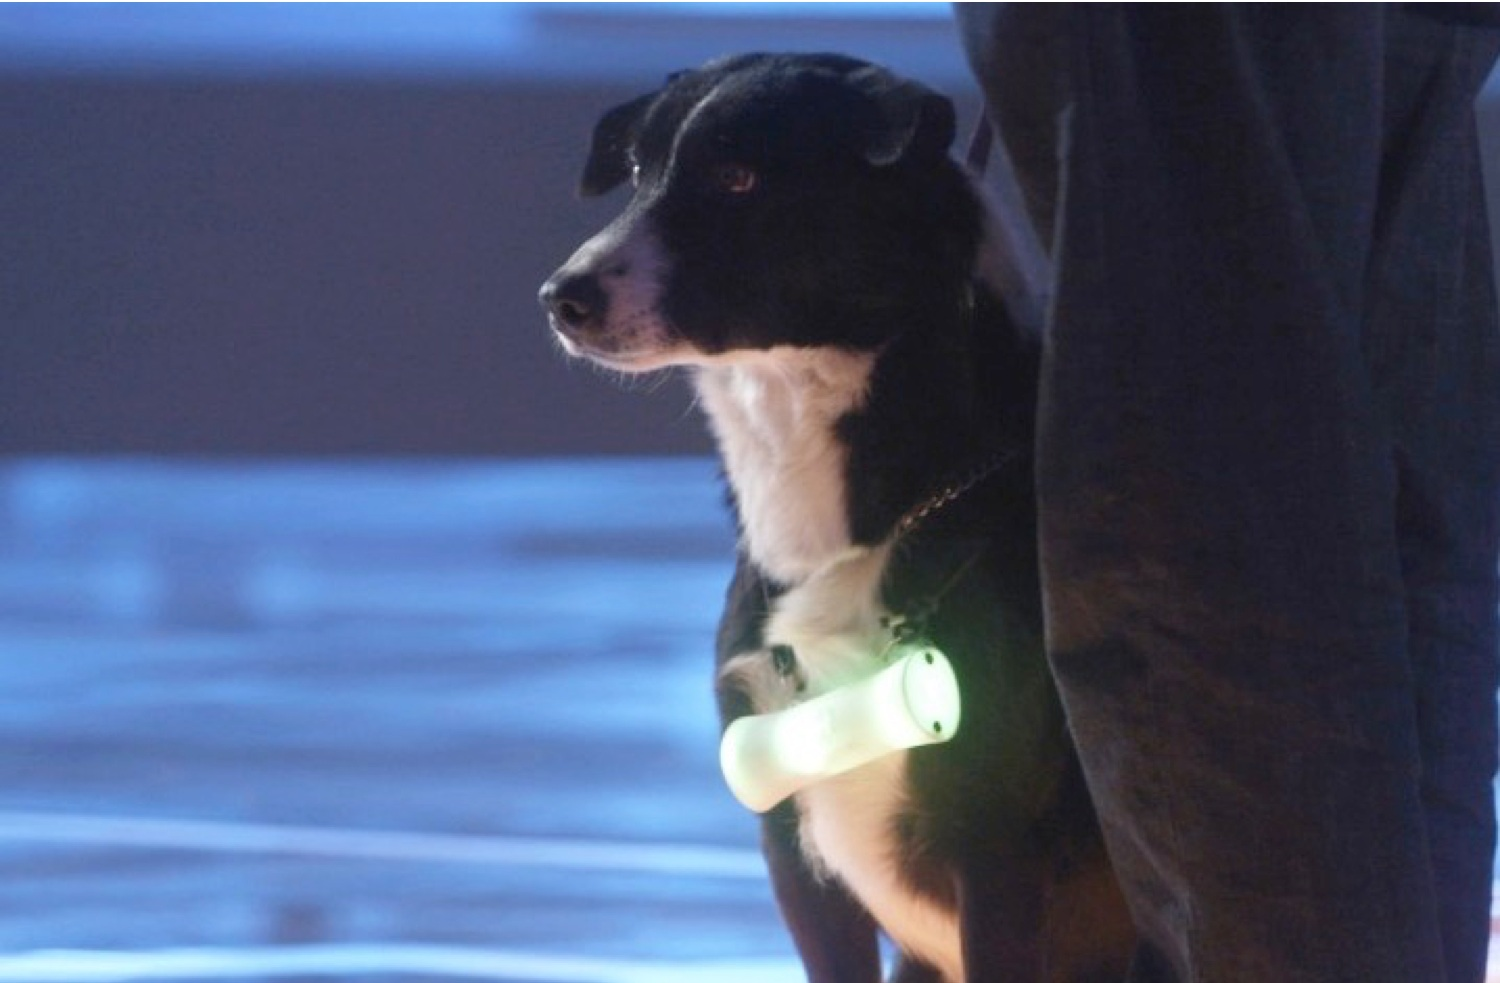 - DoGG is an acronym for Data Generator-Gatherer. HerdDogg built a small non-invasive ear tag, a reader and an online platform that gathers biometrics and behavior from the animals in pasture. It took some years, some patience and patents to get to where we are now. HerdDogg users chew, scratch and poop on our tech all day long.